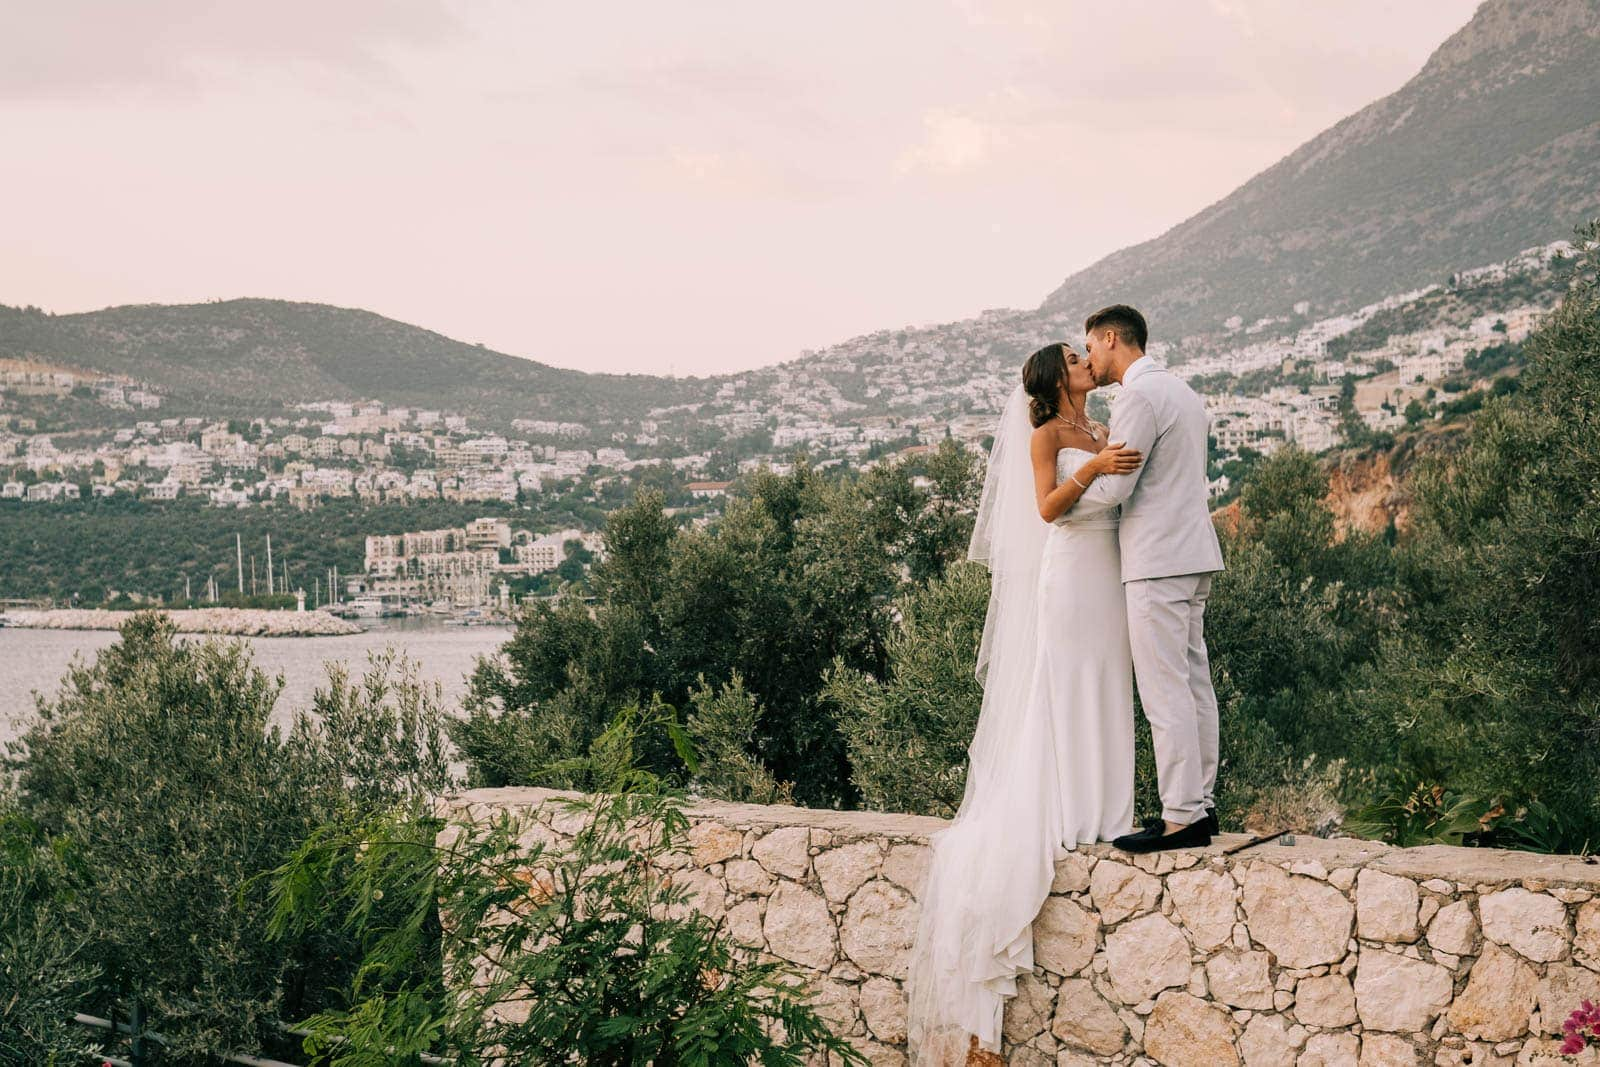 Bride and groom kiss with the incredible Ibiza scenery in the background